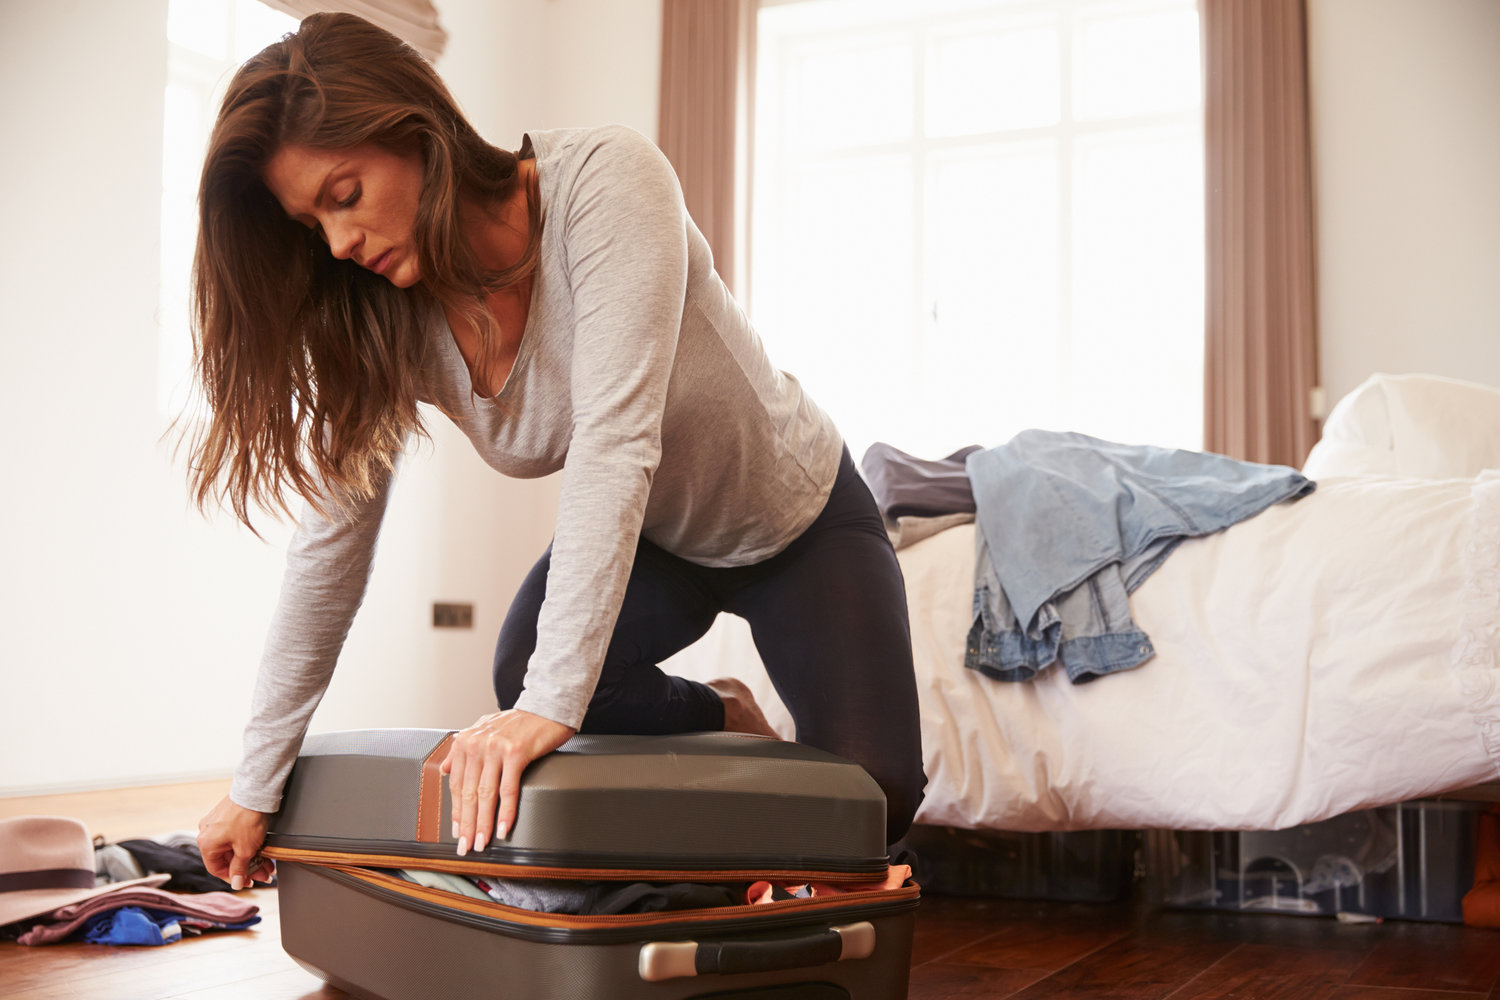 Woman Packing For Vacation Trying To Close Full Suitcase